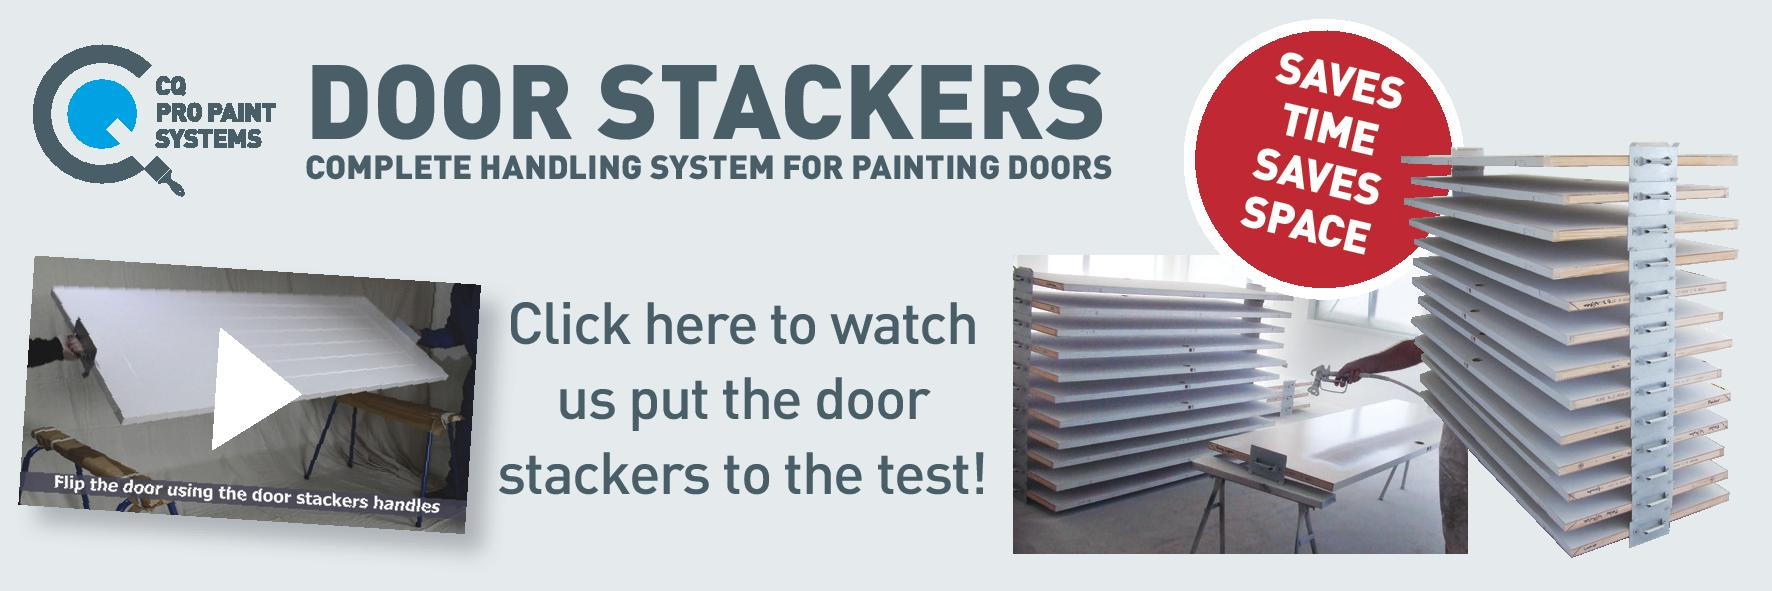 door-stackers-page-001-4-.jpg